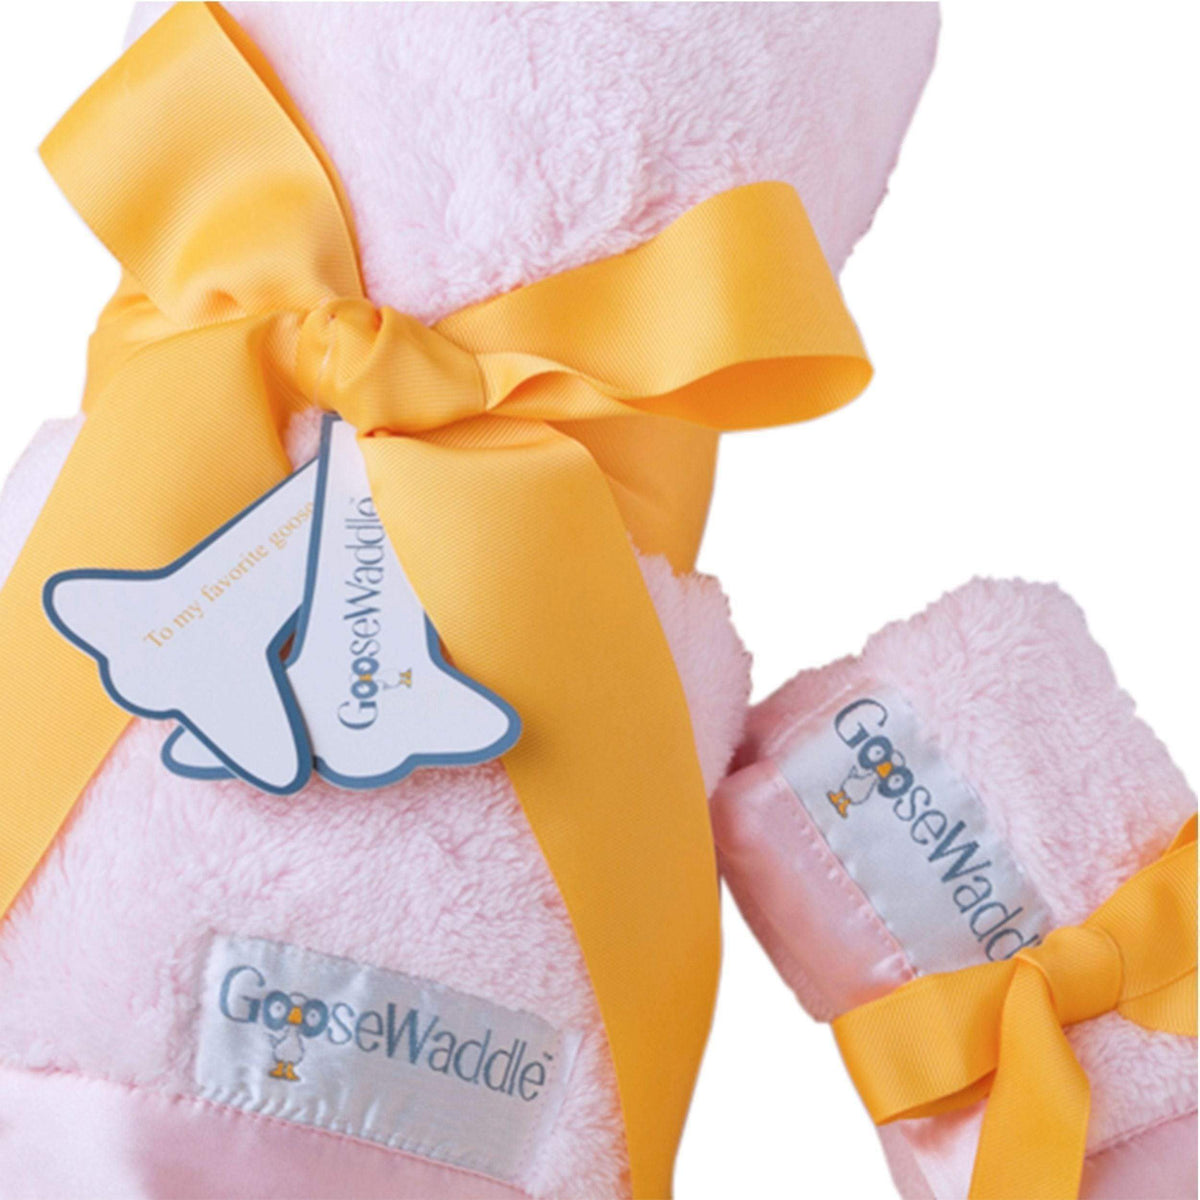 Baby Blanket Gift Set - Goosewaddle